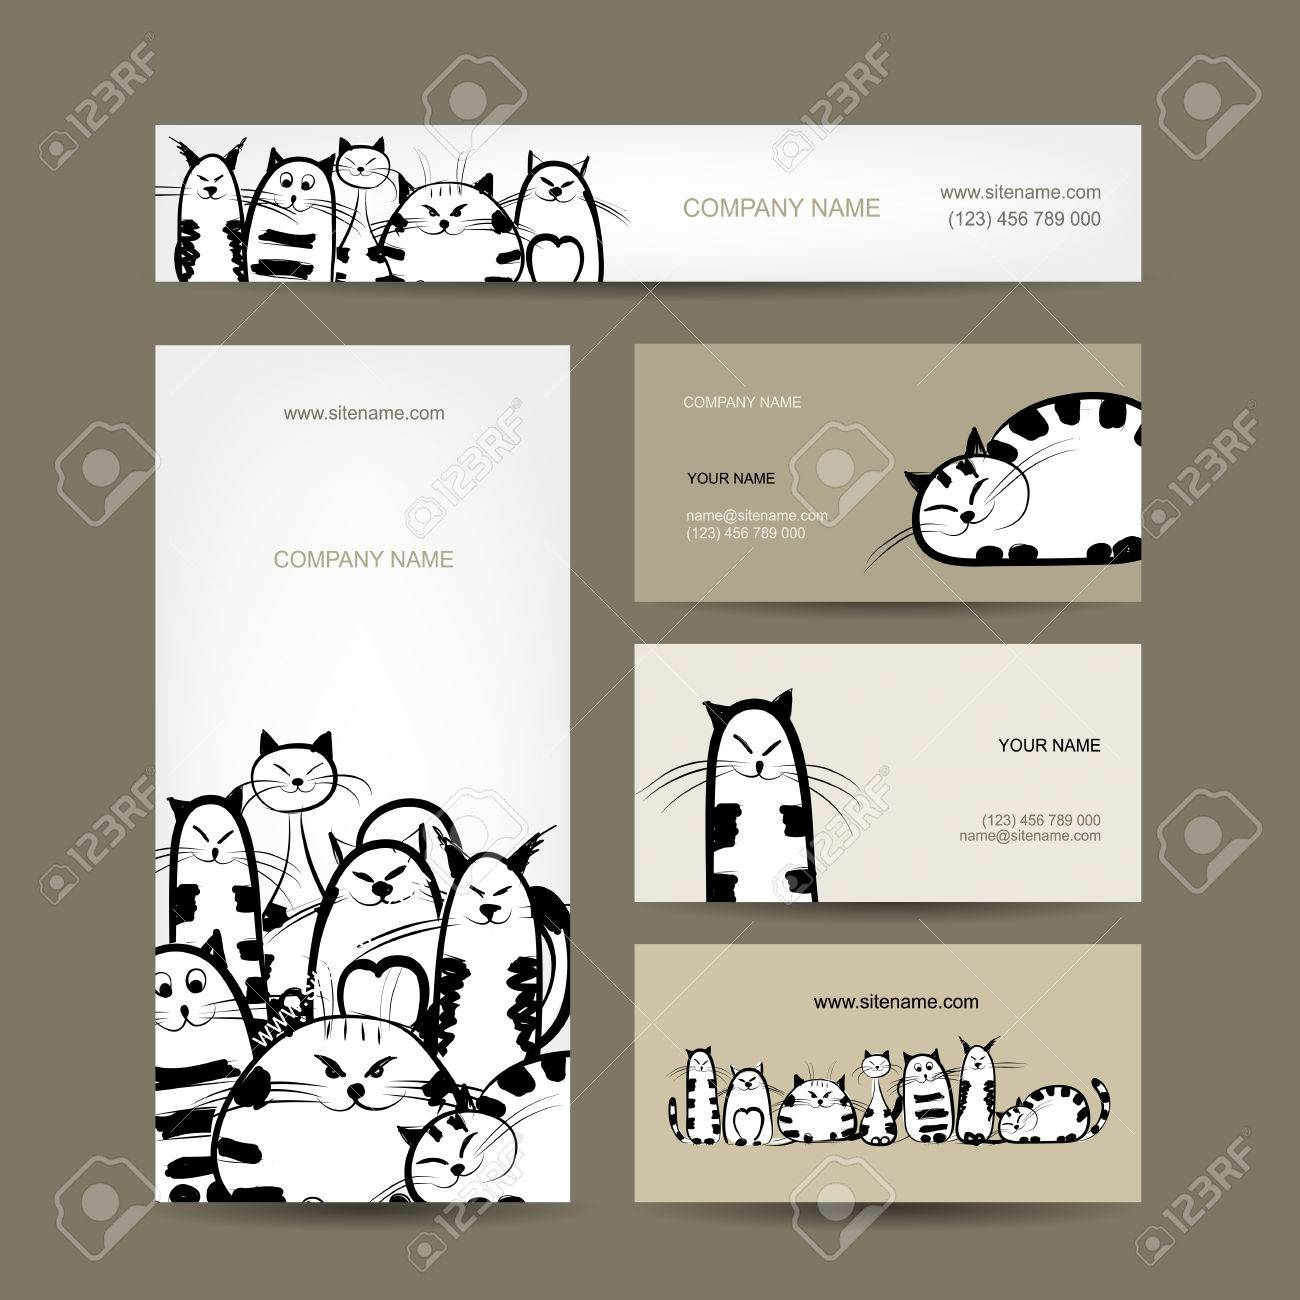 Corporate Business Cards Design With Funny Striped Cats Royalty ...